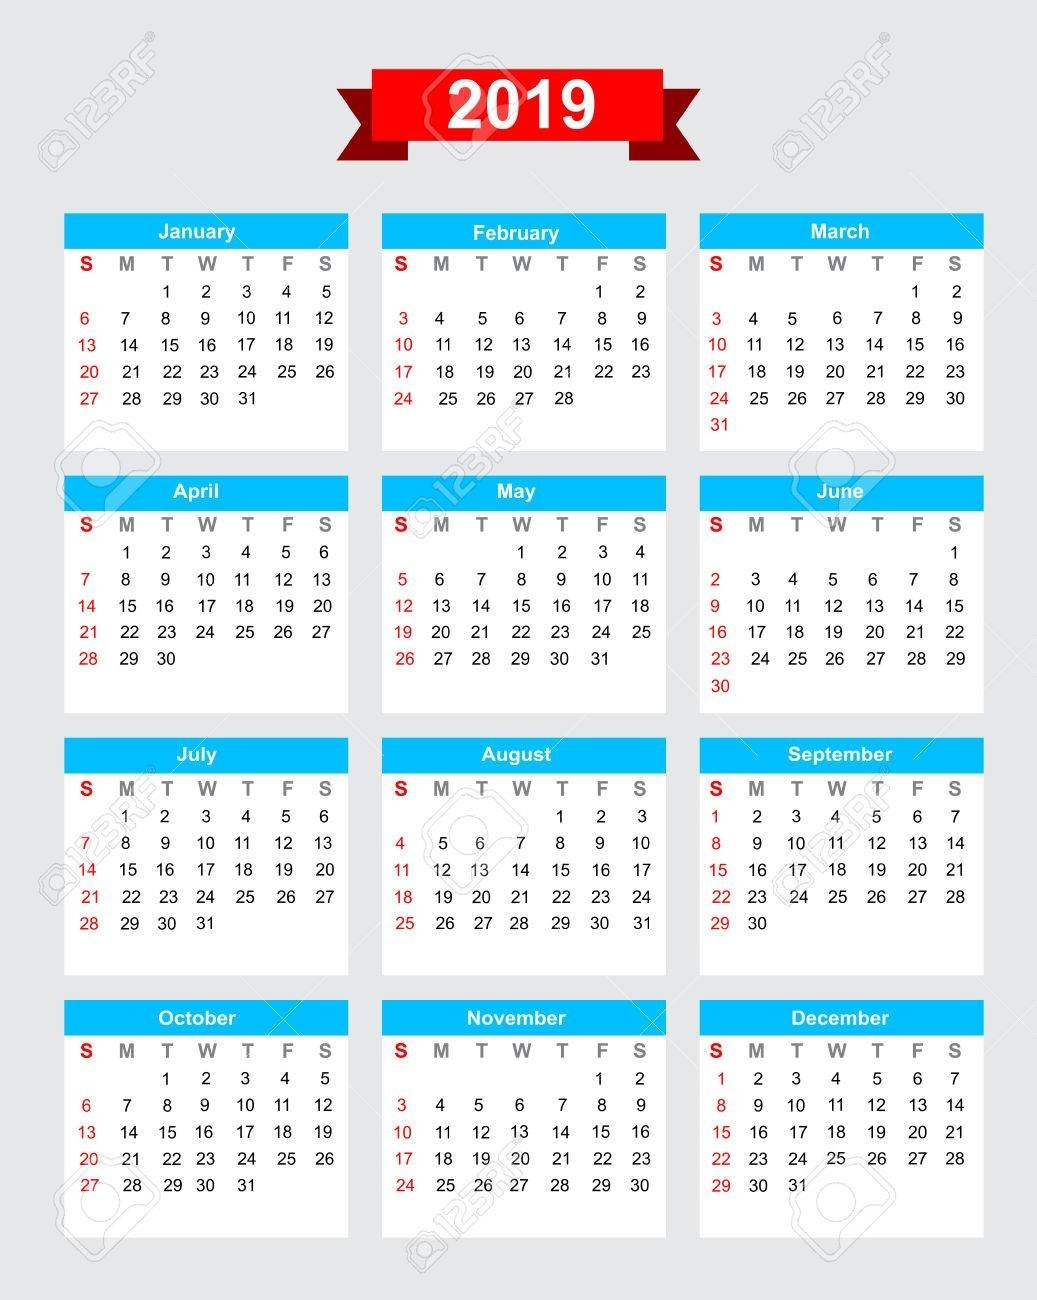 2019 Calendar Week Start Sunday Vector Royalty Free Cliparts Calendar 2019 In Weeks